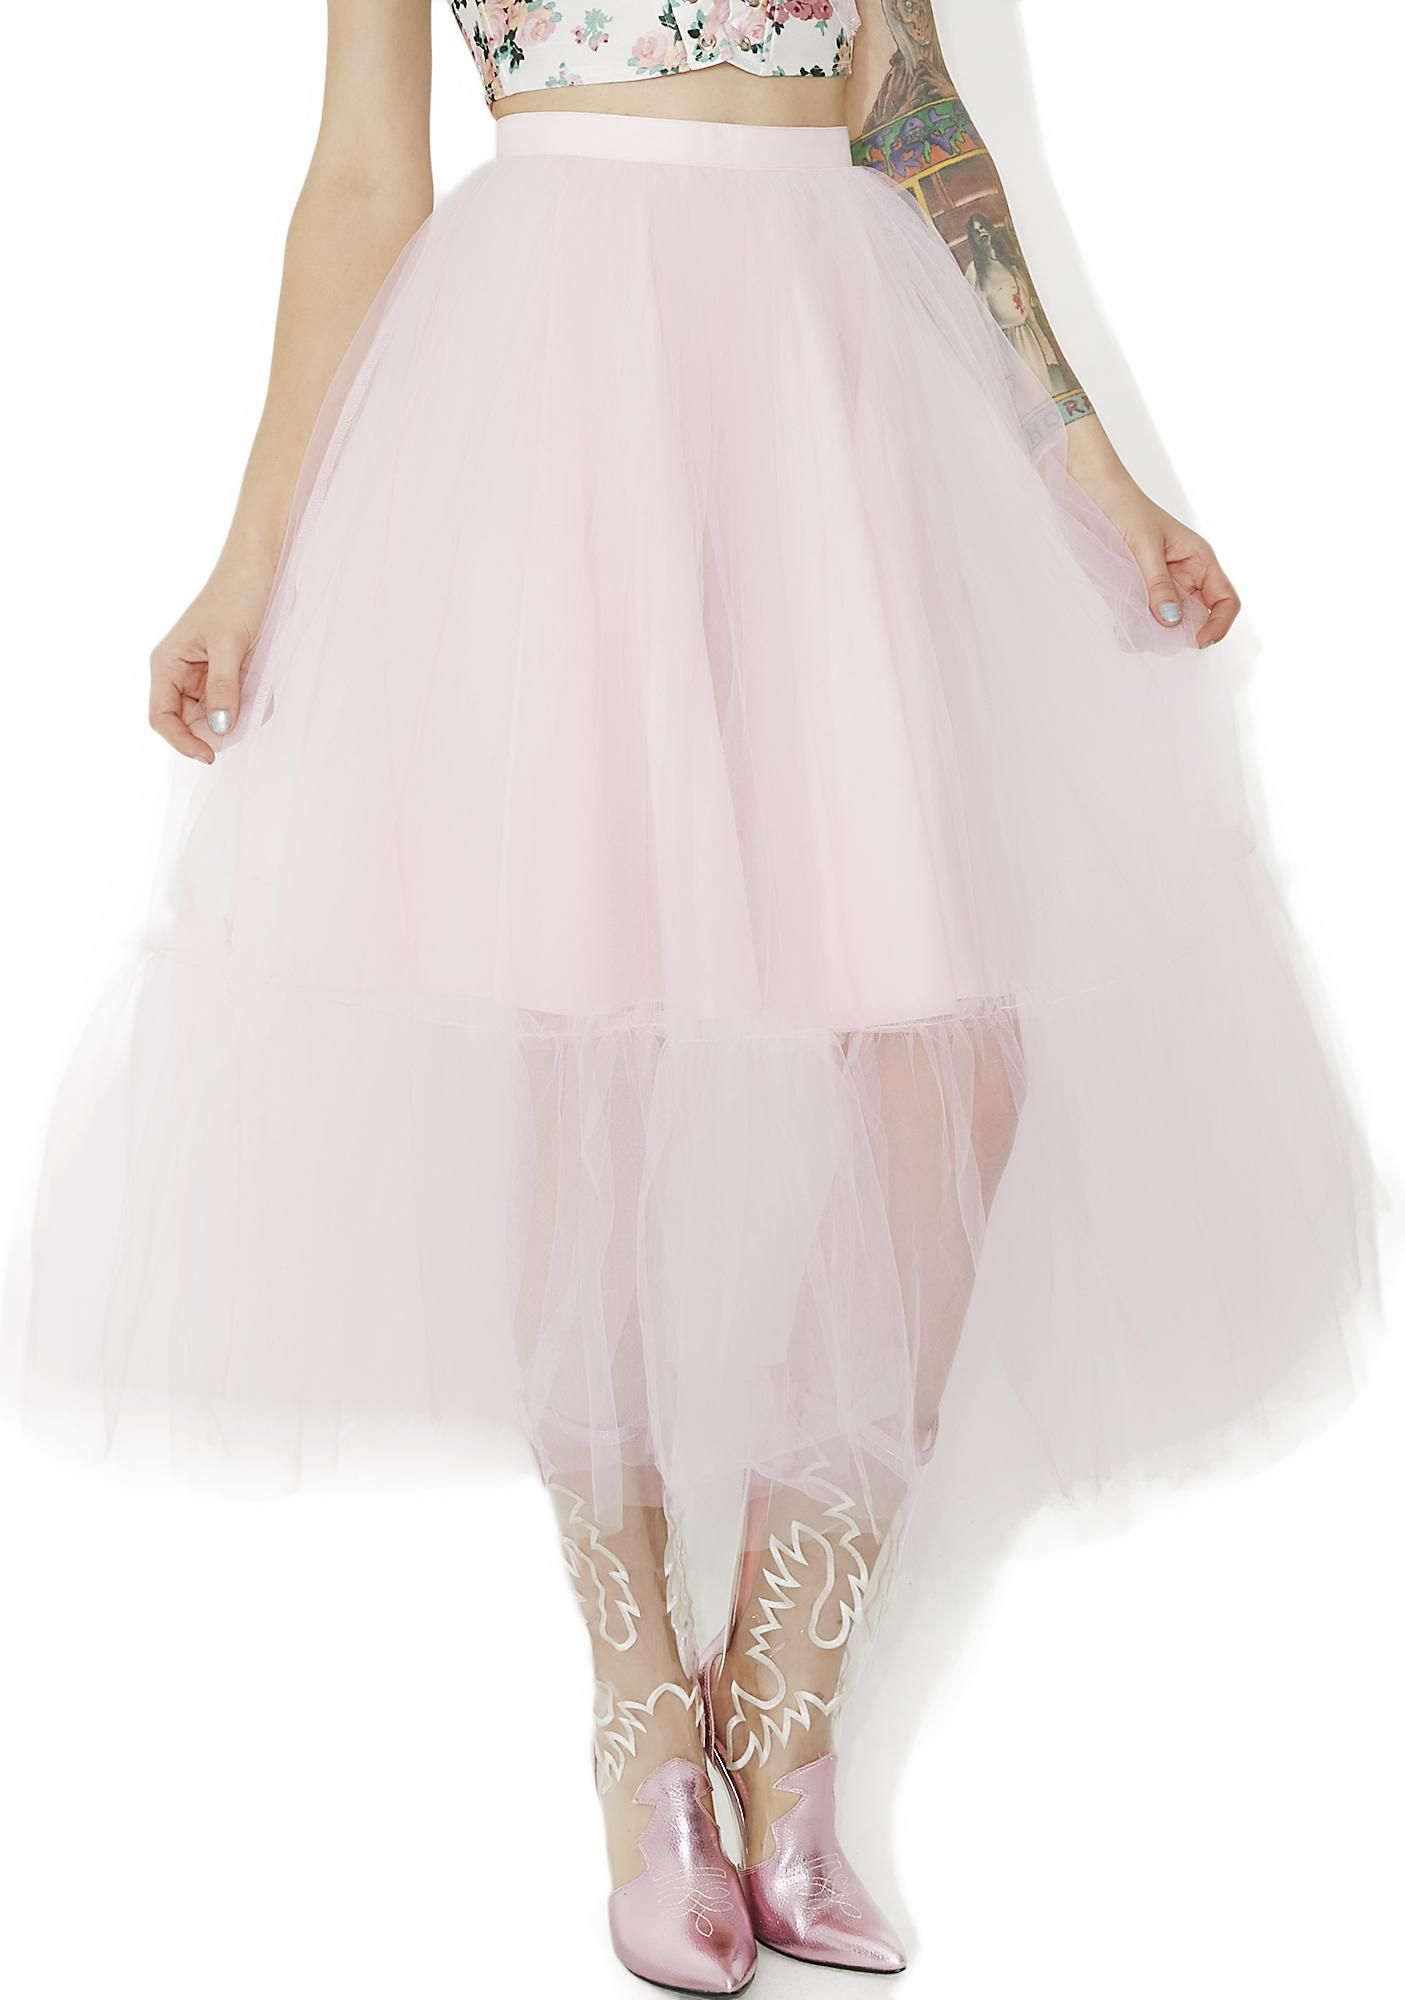 5eeeccbbd6616 Party Time Tulle Midi Skirt will keep you dancin' all night long ...